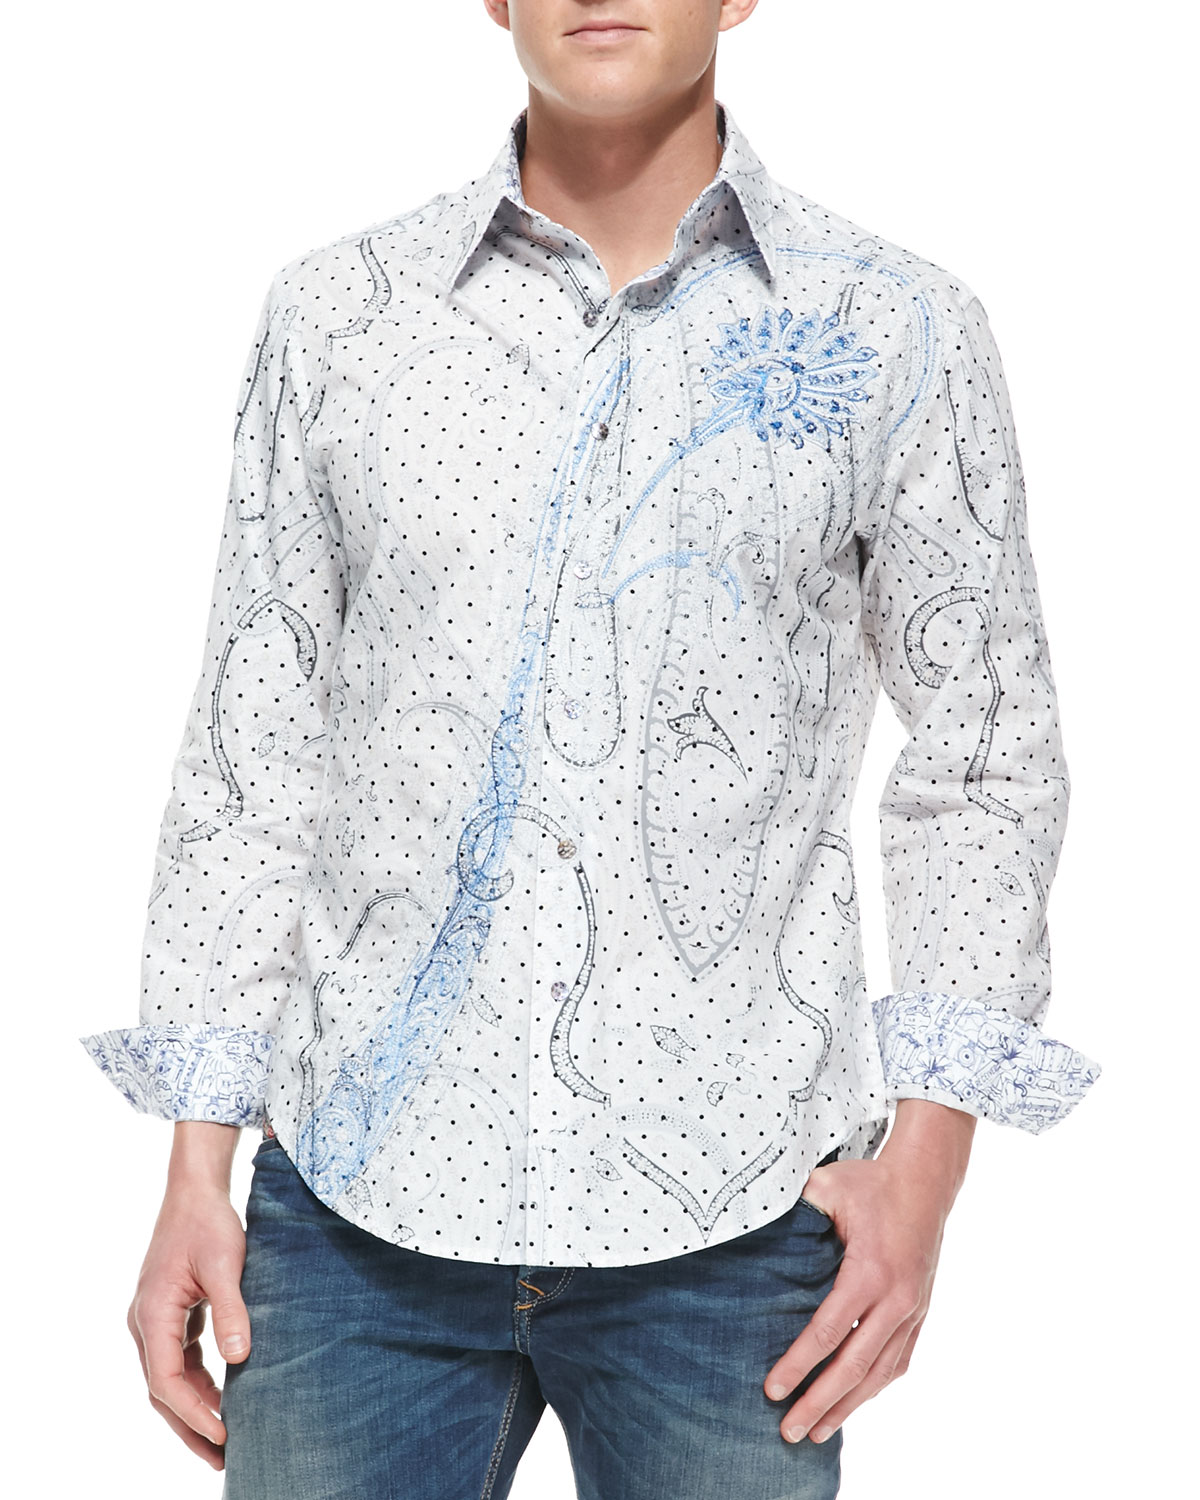 Mens Chianti Poplin Paisley Design Long Sleeve Shirt   Robert Graham   White